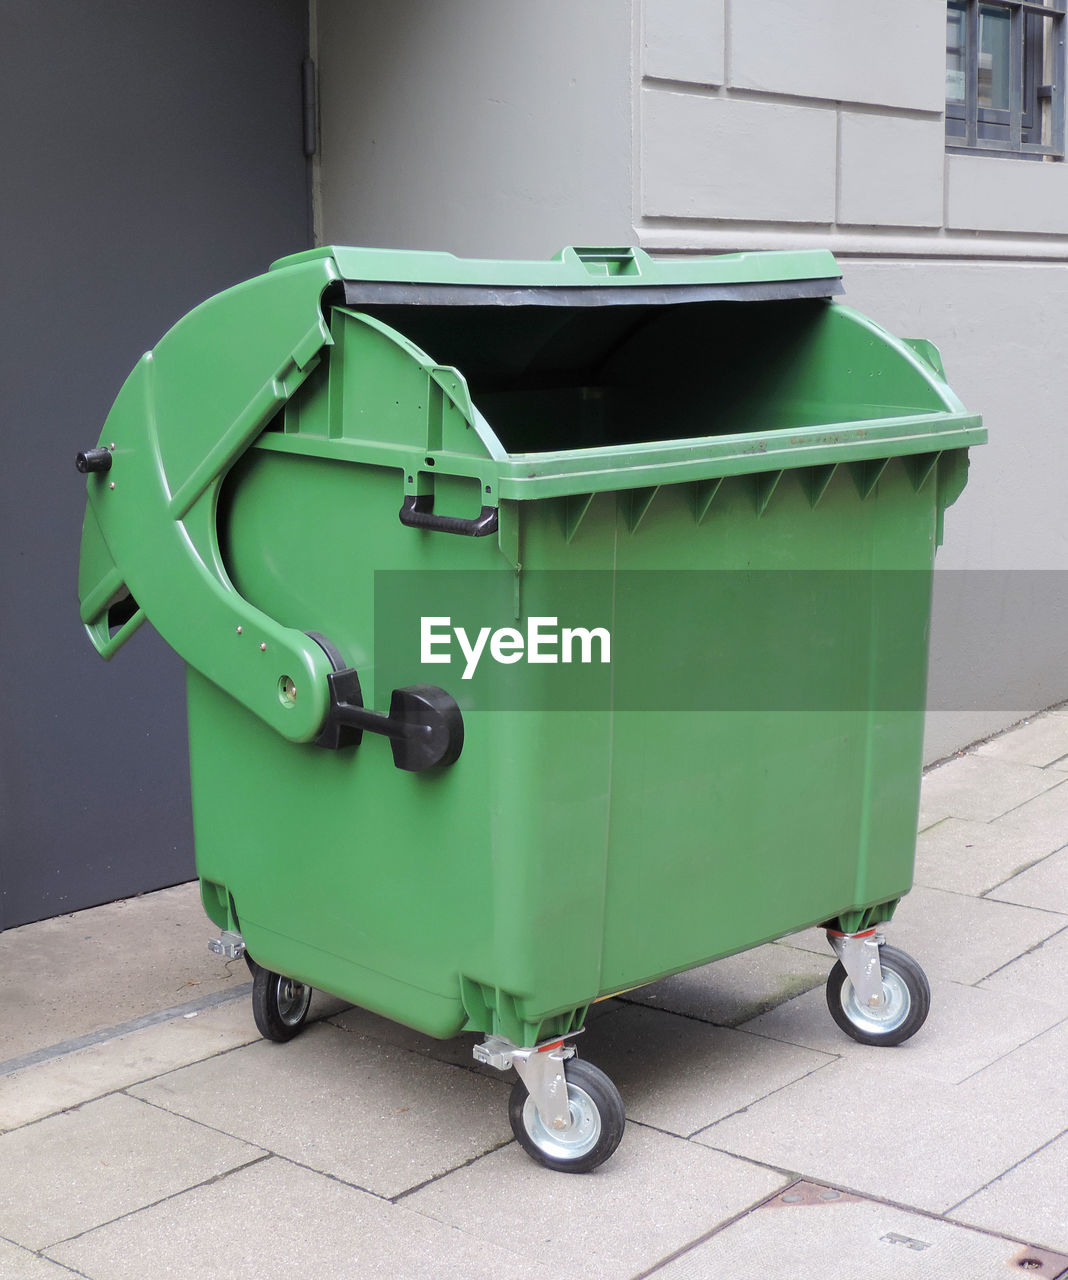 green color, garbage bin, recycling bin, no people, garbage can, recycling, day, environmental issues, container, outdoors, environmental conservation, close-up, environment, hygiene, garbage, footpath, nature, architecture, plastic, city